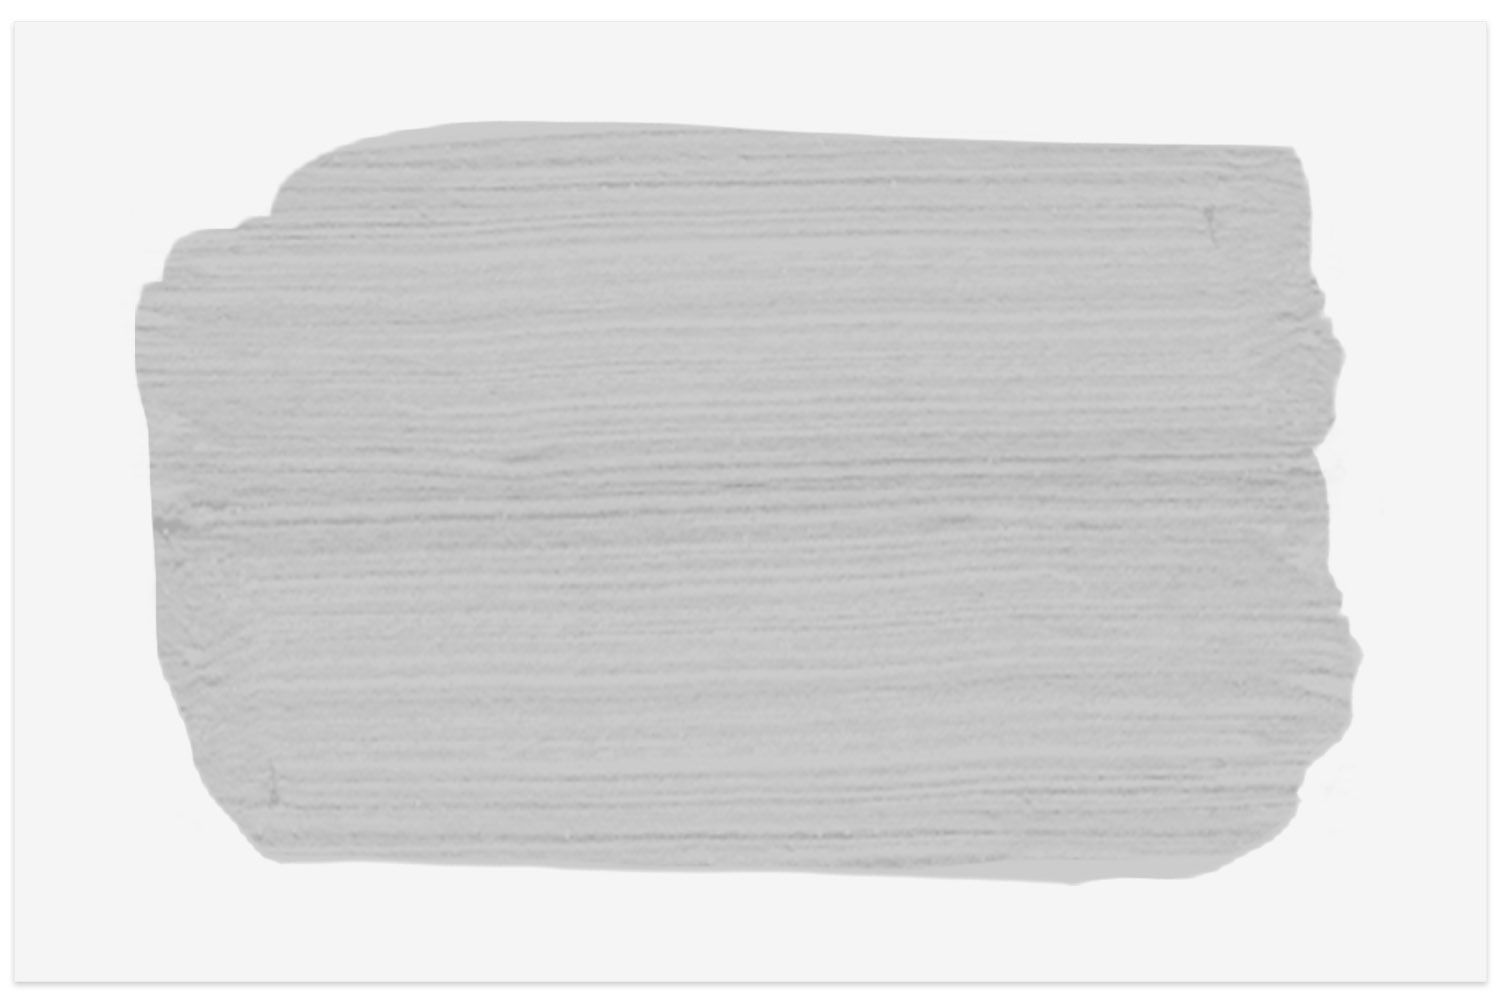 Loft Space N500-2 paint swatch from Behr